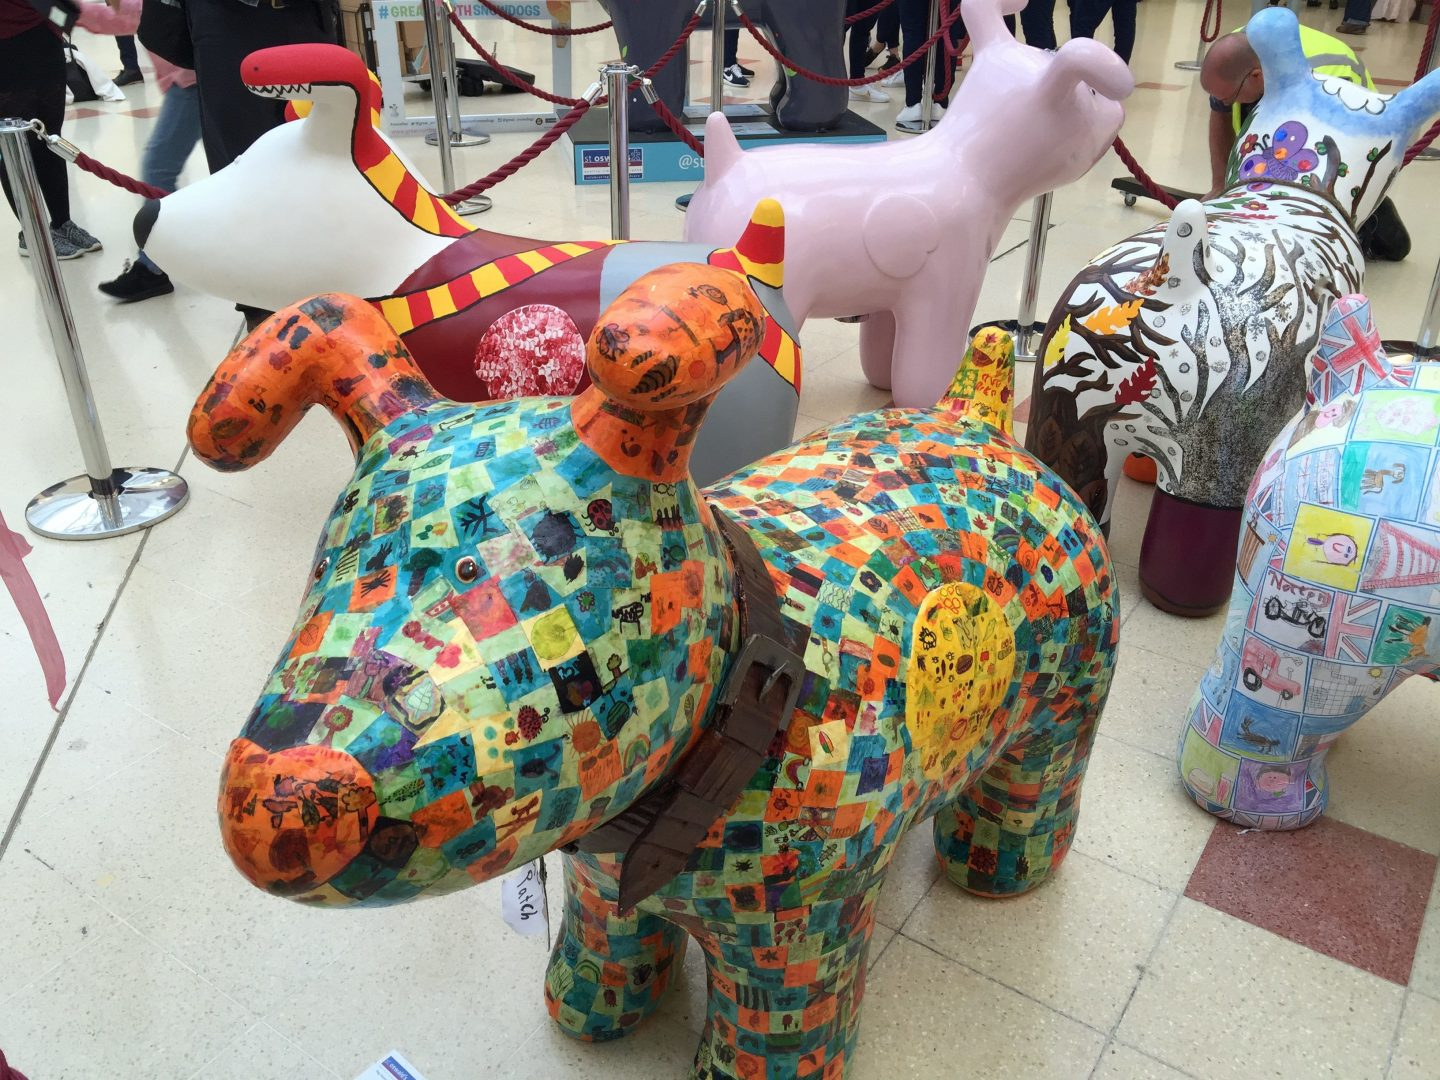 The Great North Snowdogs have arrived!